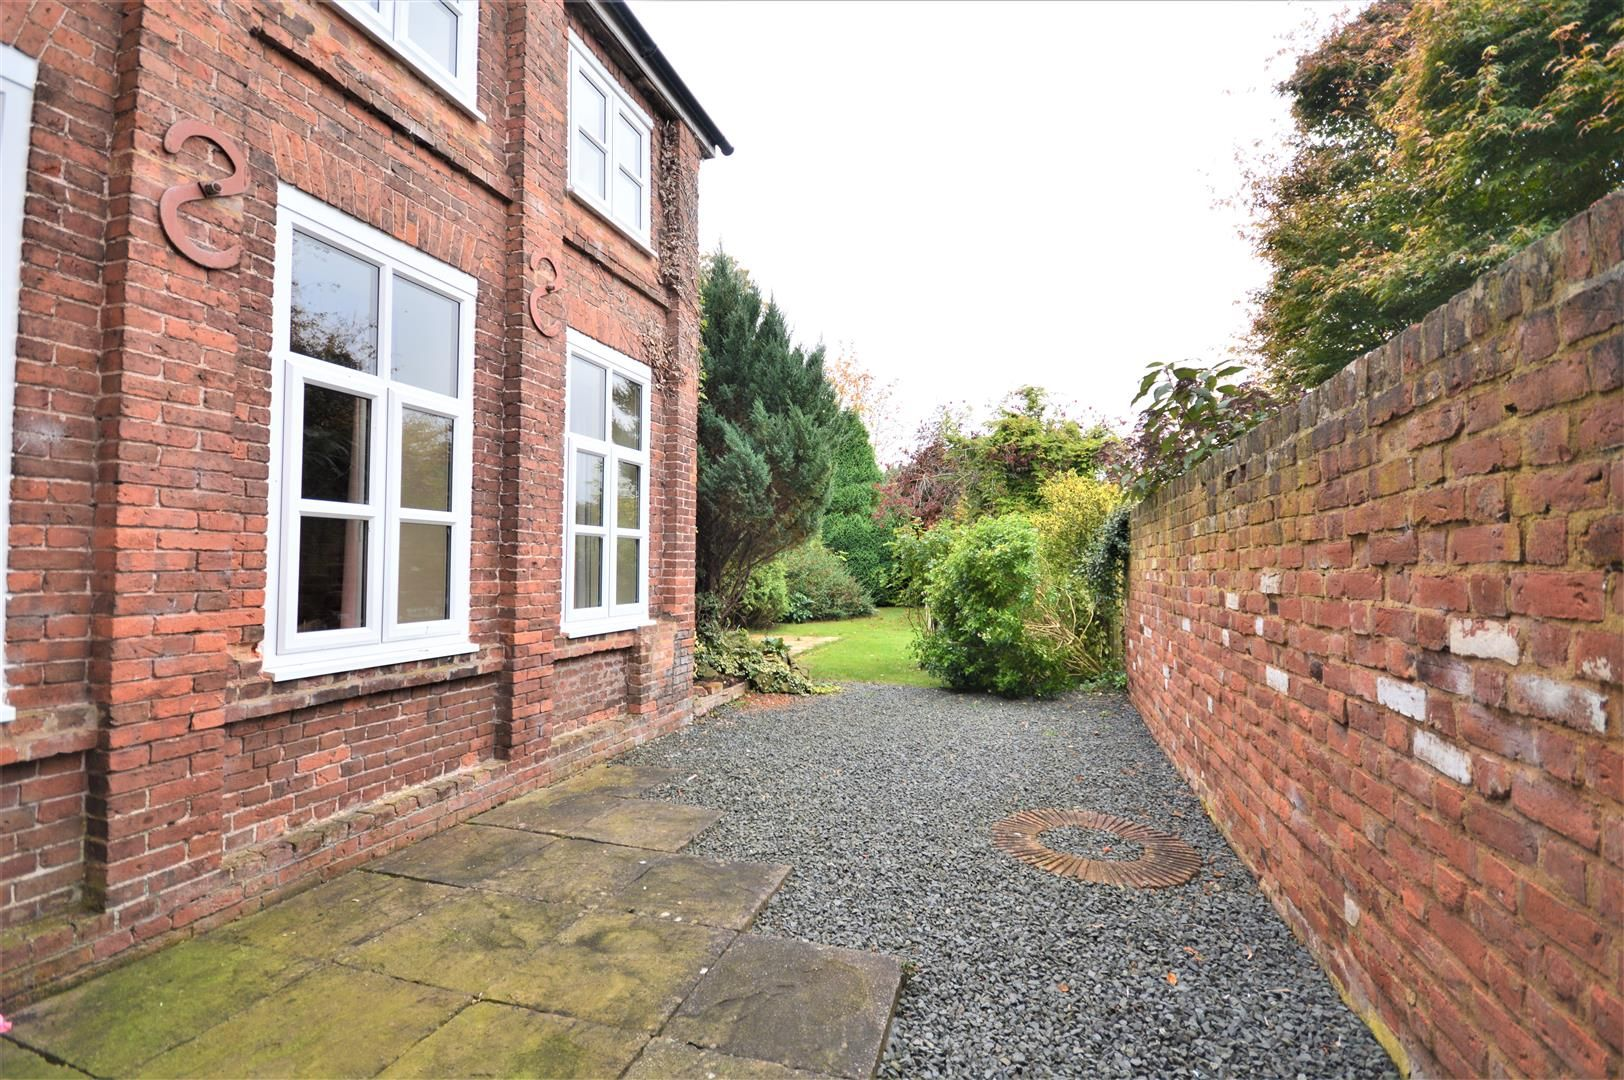 4 bed semi-detached for sale in Nr Madley  - Property Image 19